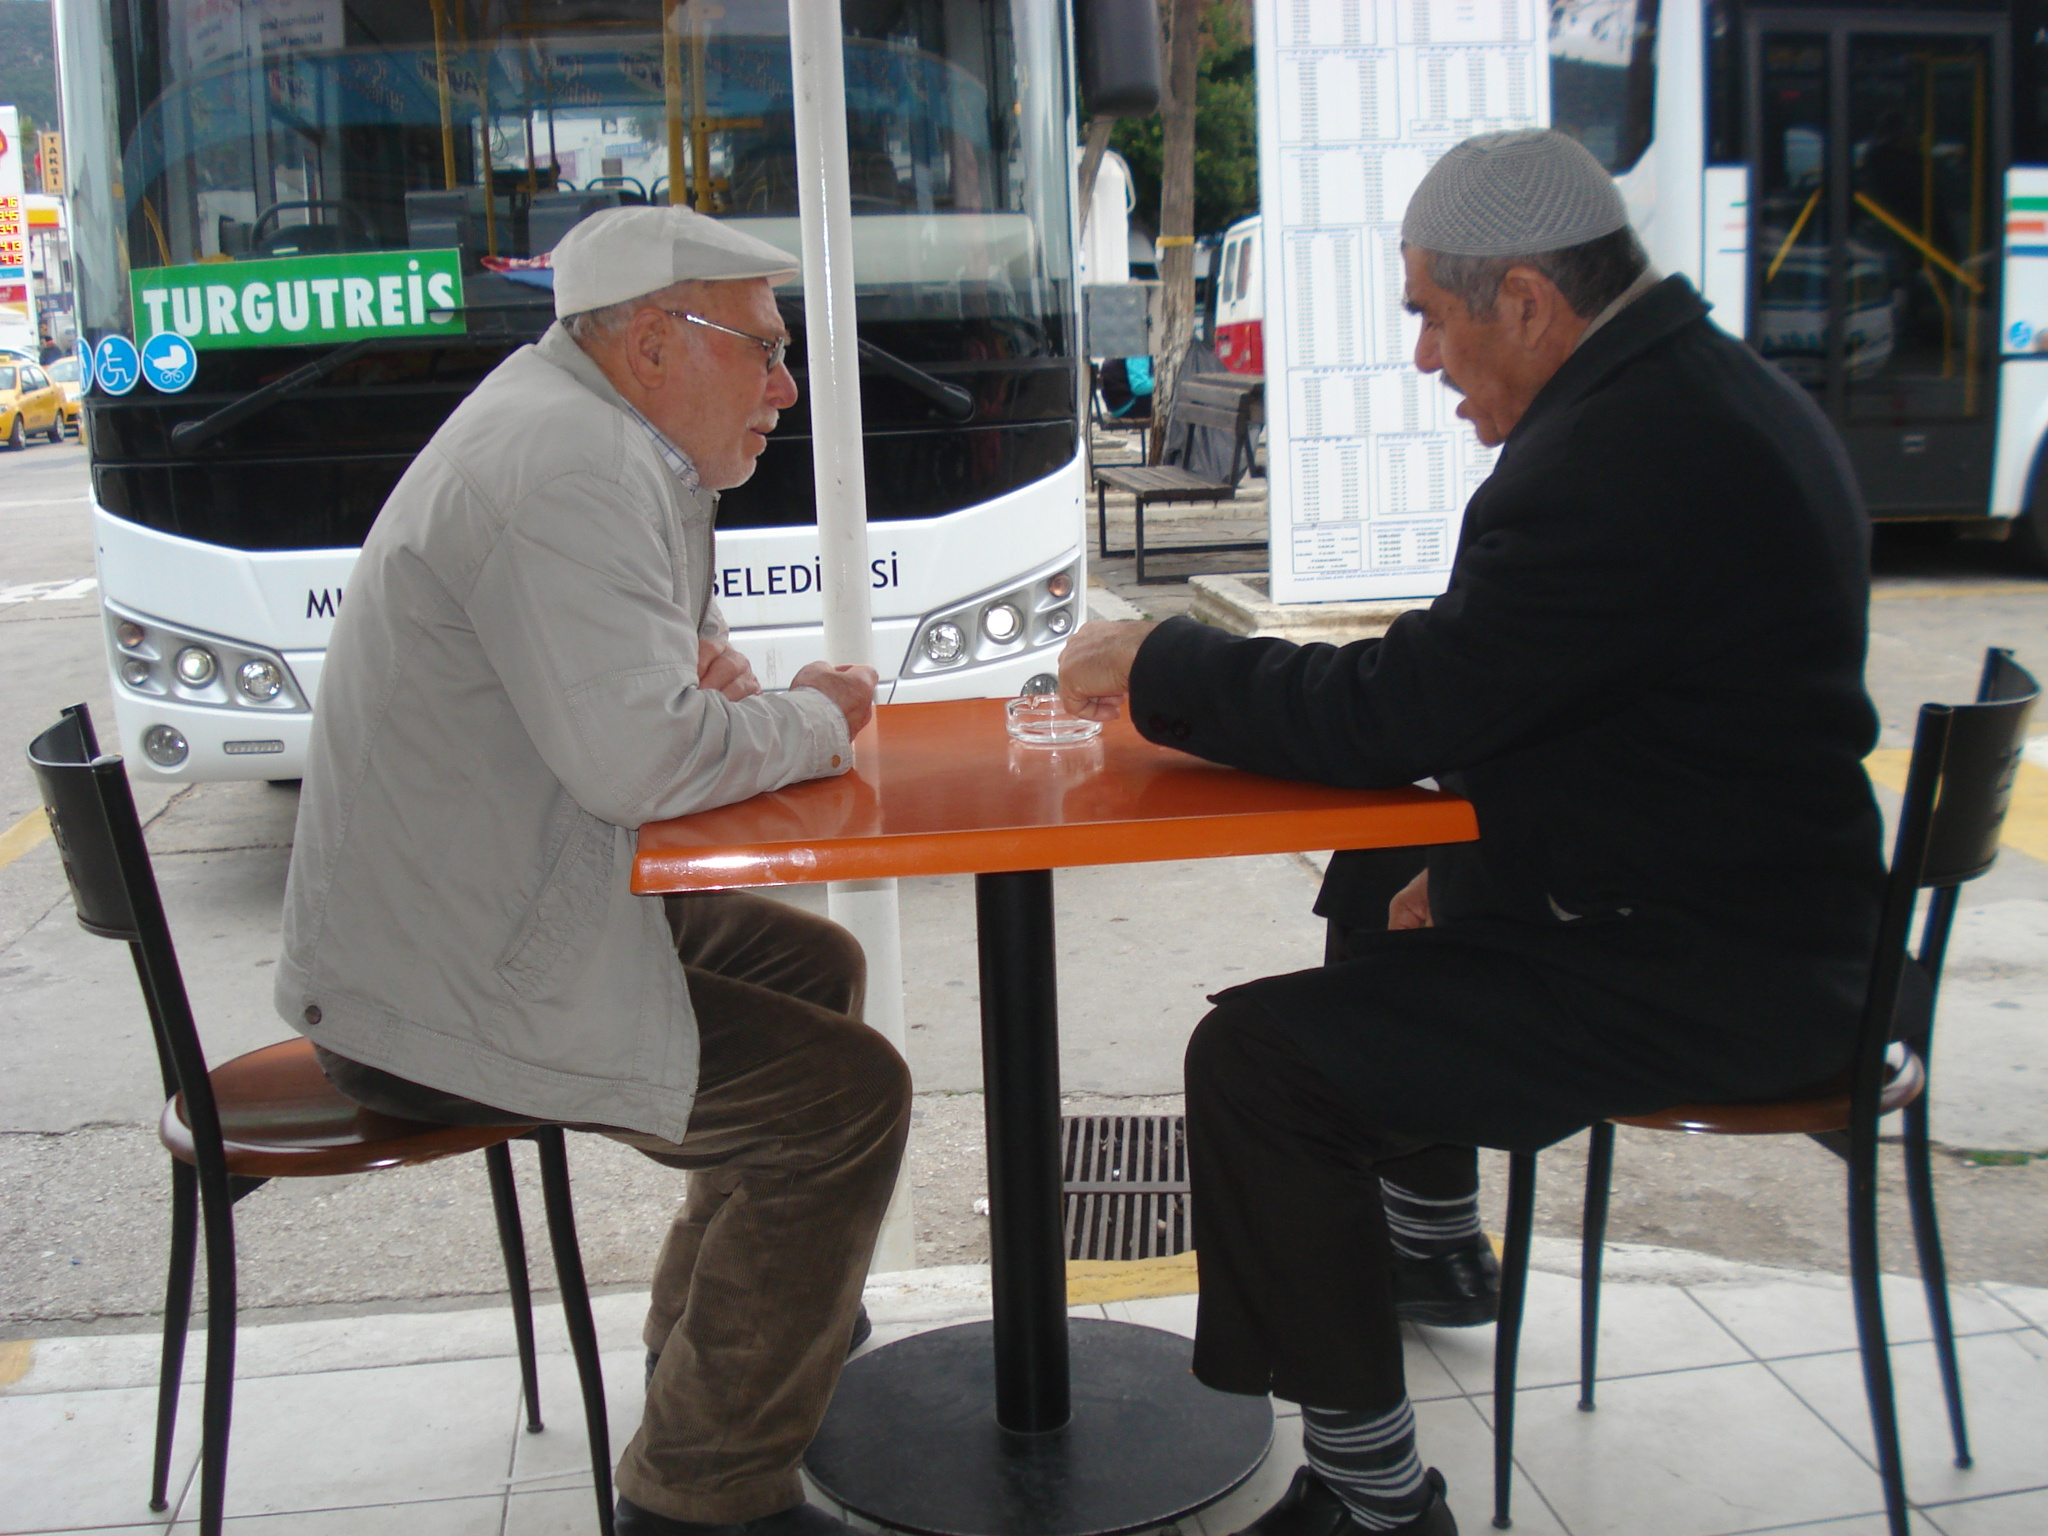 A DAILY TALK... by GÜVEN YENERSOY